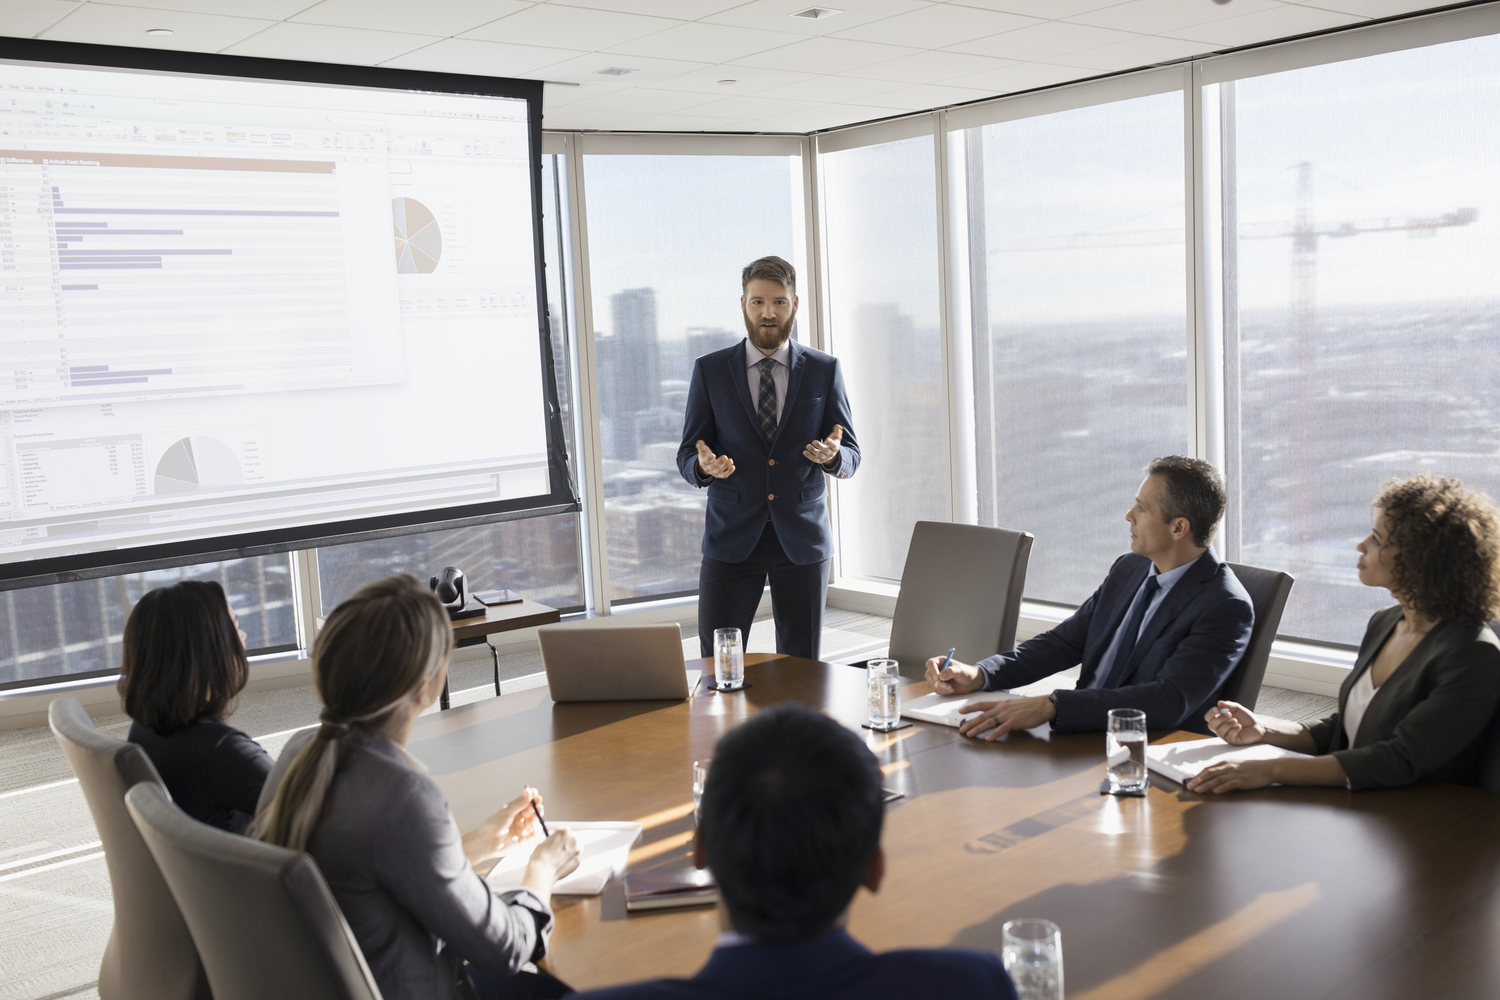 How to coach teammates  a key responsibility of effective leaders